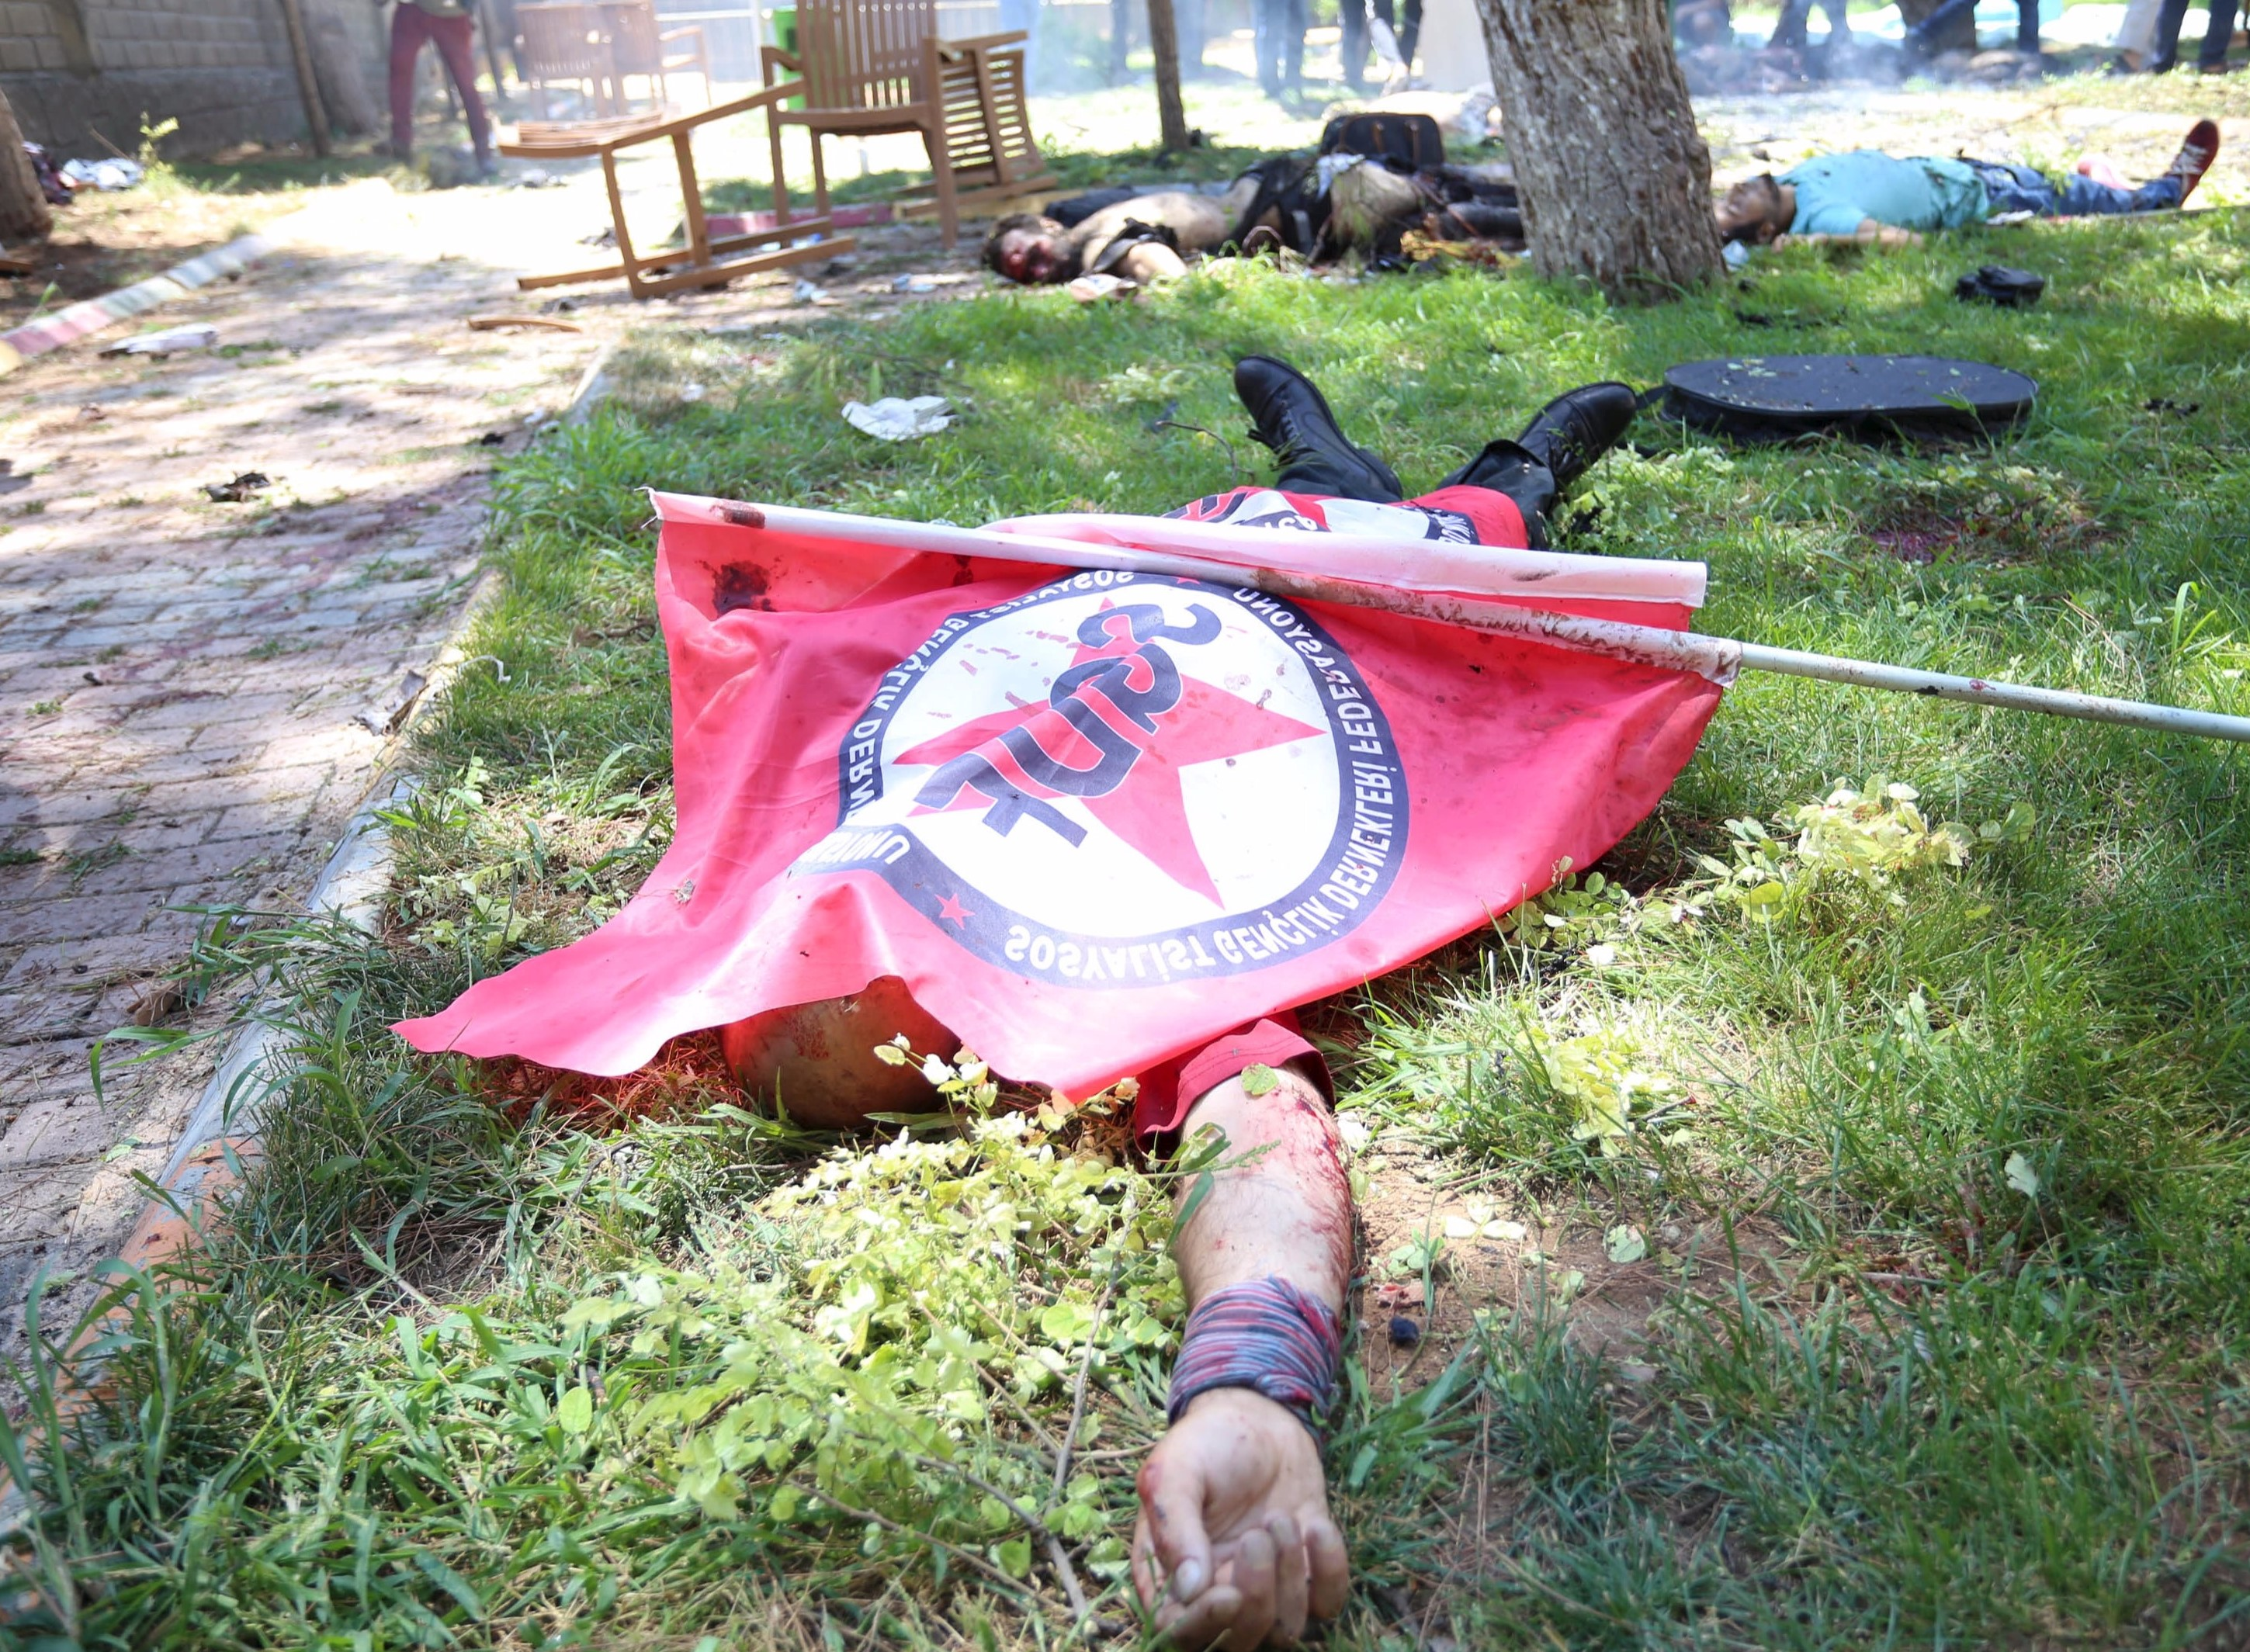 One of the casualities covered with a flag used in the rally